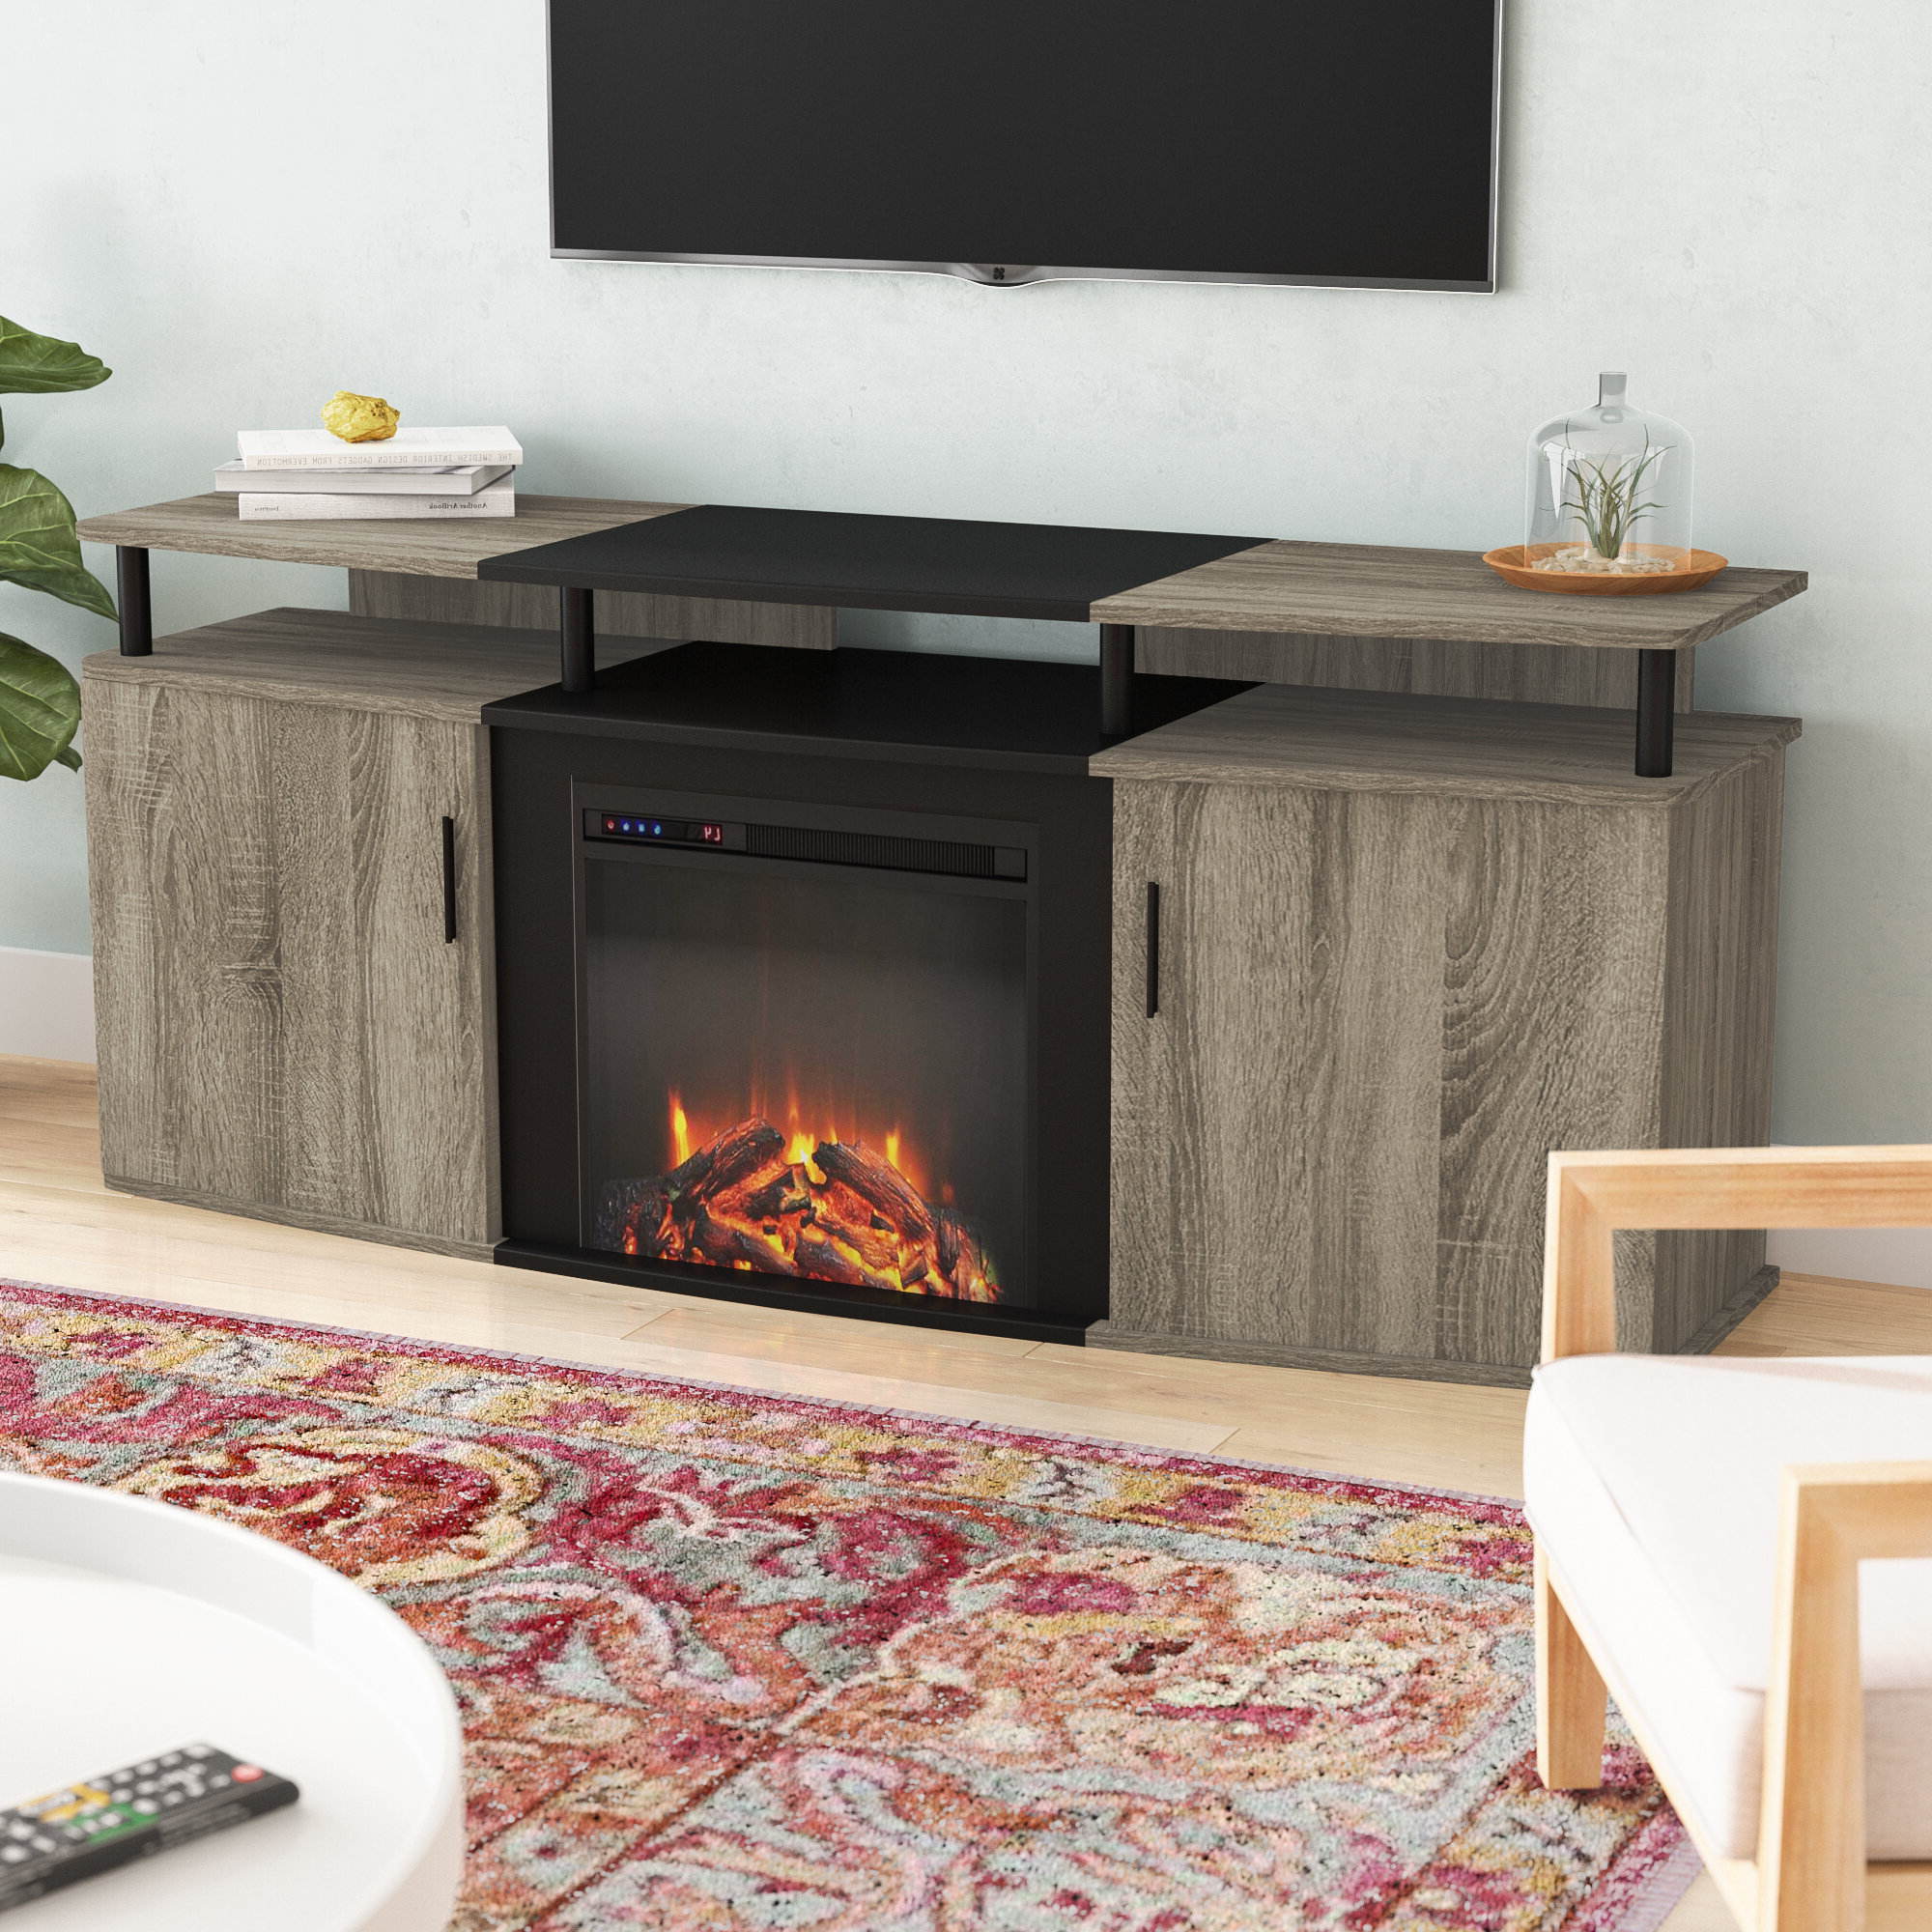 """Latest Kinsella Tv Stands For Tvs Up To 70"""" For Fireplace Tv Stand 70 Inch – Ideas On Foter (View 17 of 25)"""